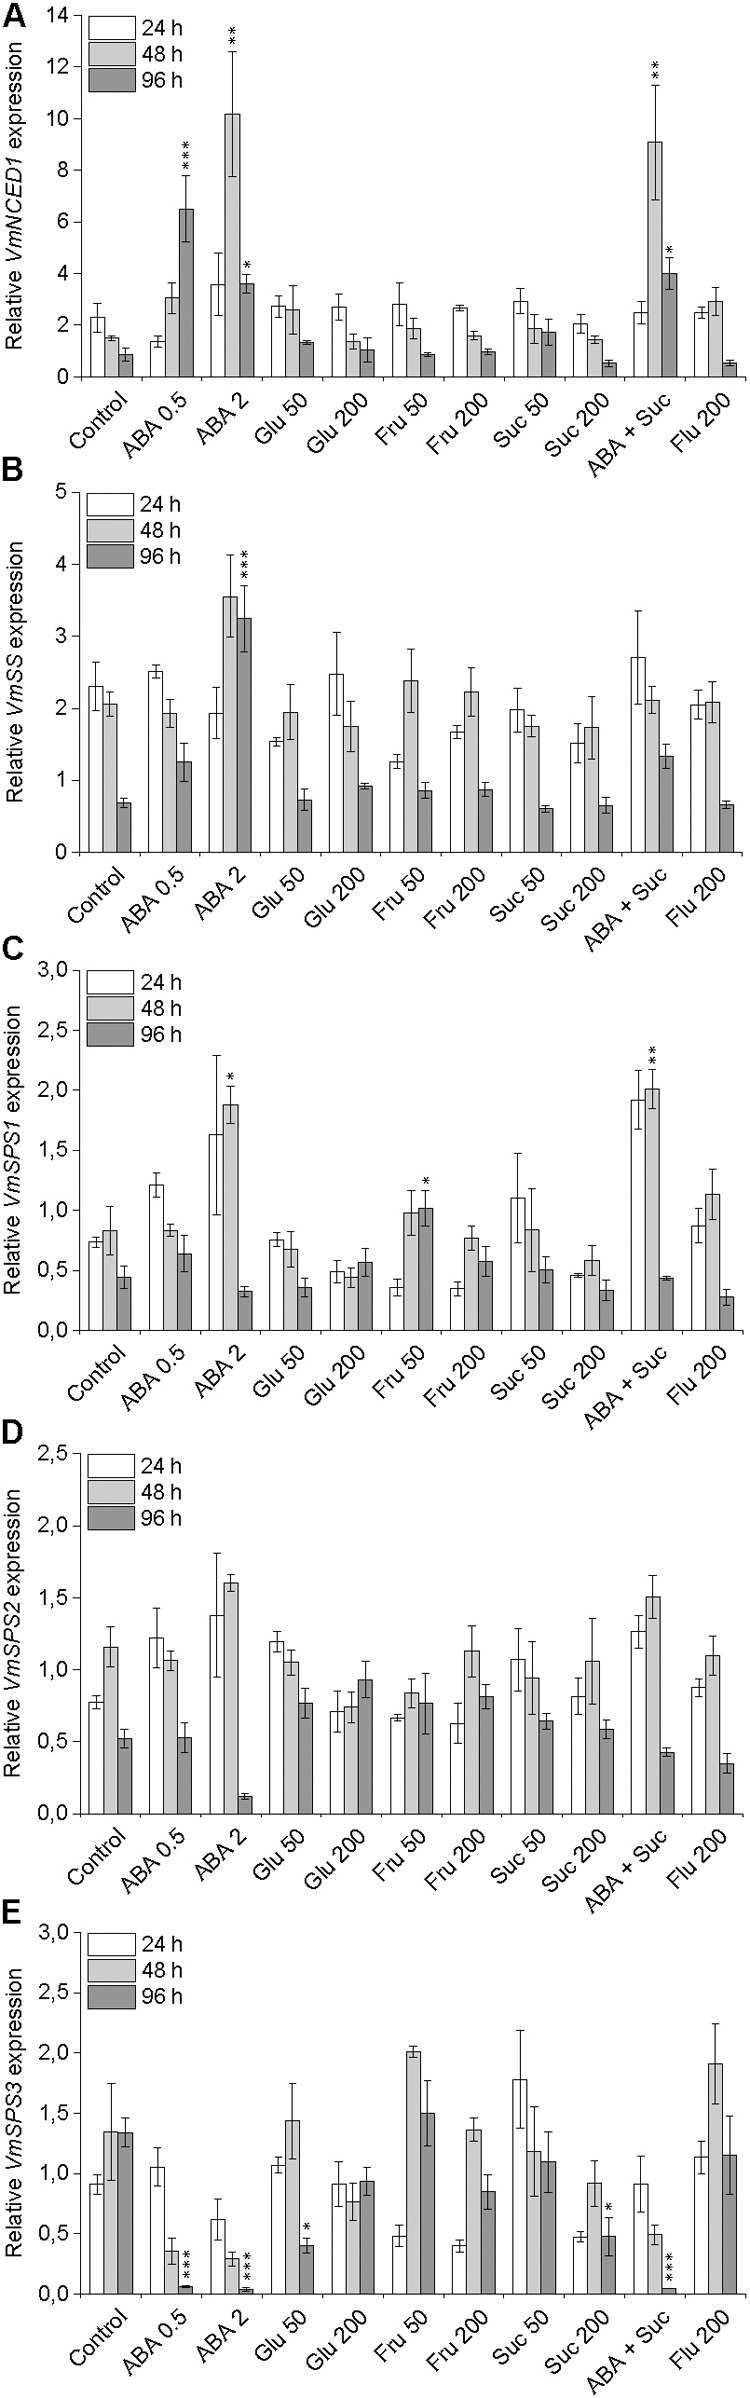 Effect of post-harvest ABA and sugar treatments on the expression of key ABA and sucrose biosynthetic genes VmNCED1 (A) , VmSS (B) , VmSPS1 (C) , VmSPS2 (D) , and VmSPS3 (E) in bilberry fruit. The treatments were: ABA (0.5 and 2 mM), glucose (50 and 200 mM), fructose (50 and 200 mM), sucrose (50 and 200 mM), 0.5 mM ABA + 200 mM sucrose, 200 μM fluridone or water (control). Relative expression of the genes was quantified by qRT-PCR and normalized to VmGAPDH . Values represent means ± SEs of three replicates. Asterisks indicate significant differences from respective control ( ∗ P ≤ 0.05, ∗∗ P ≤ 0.01, ∗∗∗ P ≤ 0.001, one-way ANOVA with Tukey's HSD test).